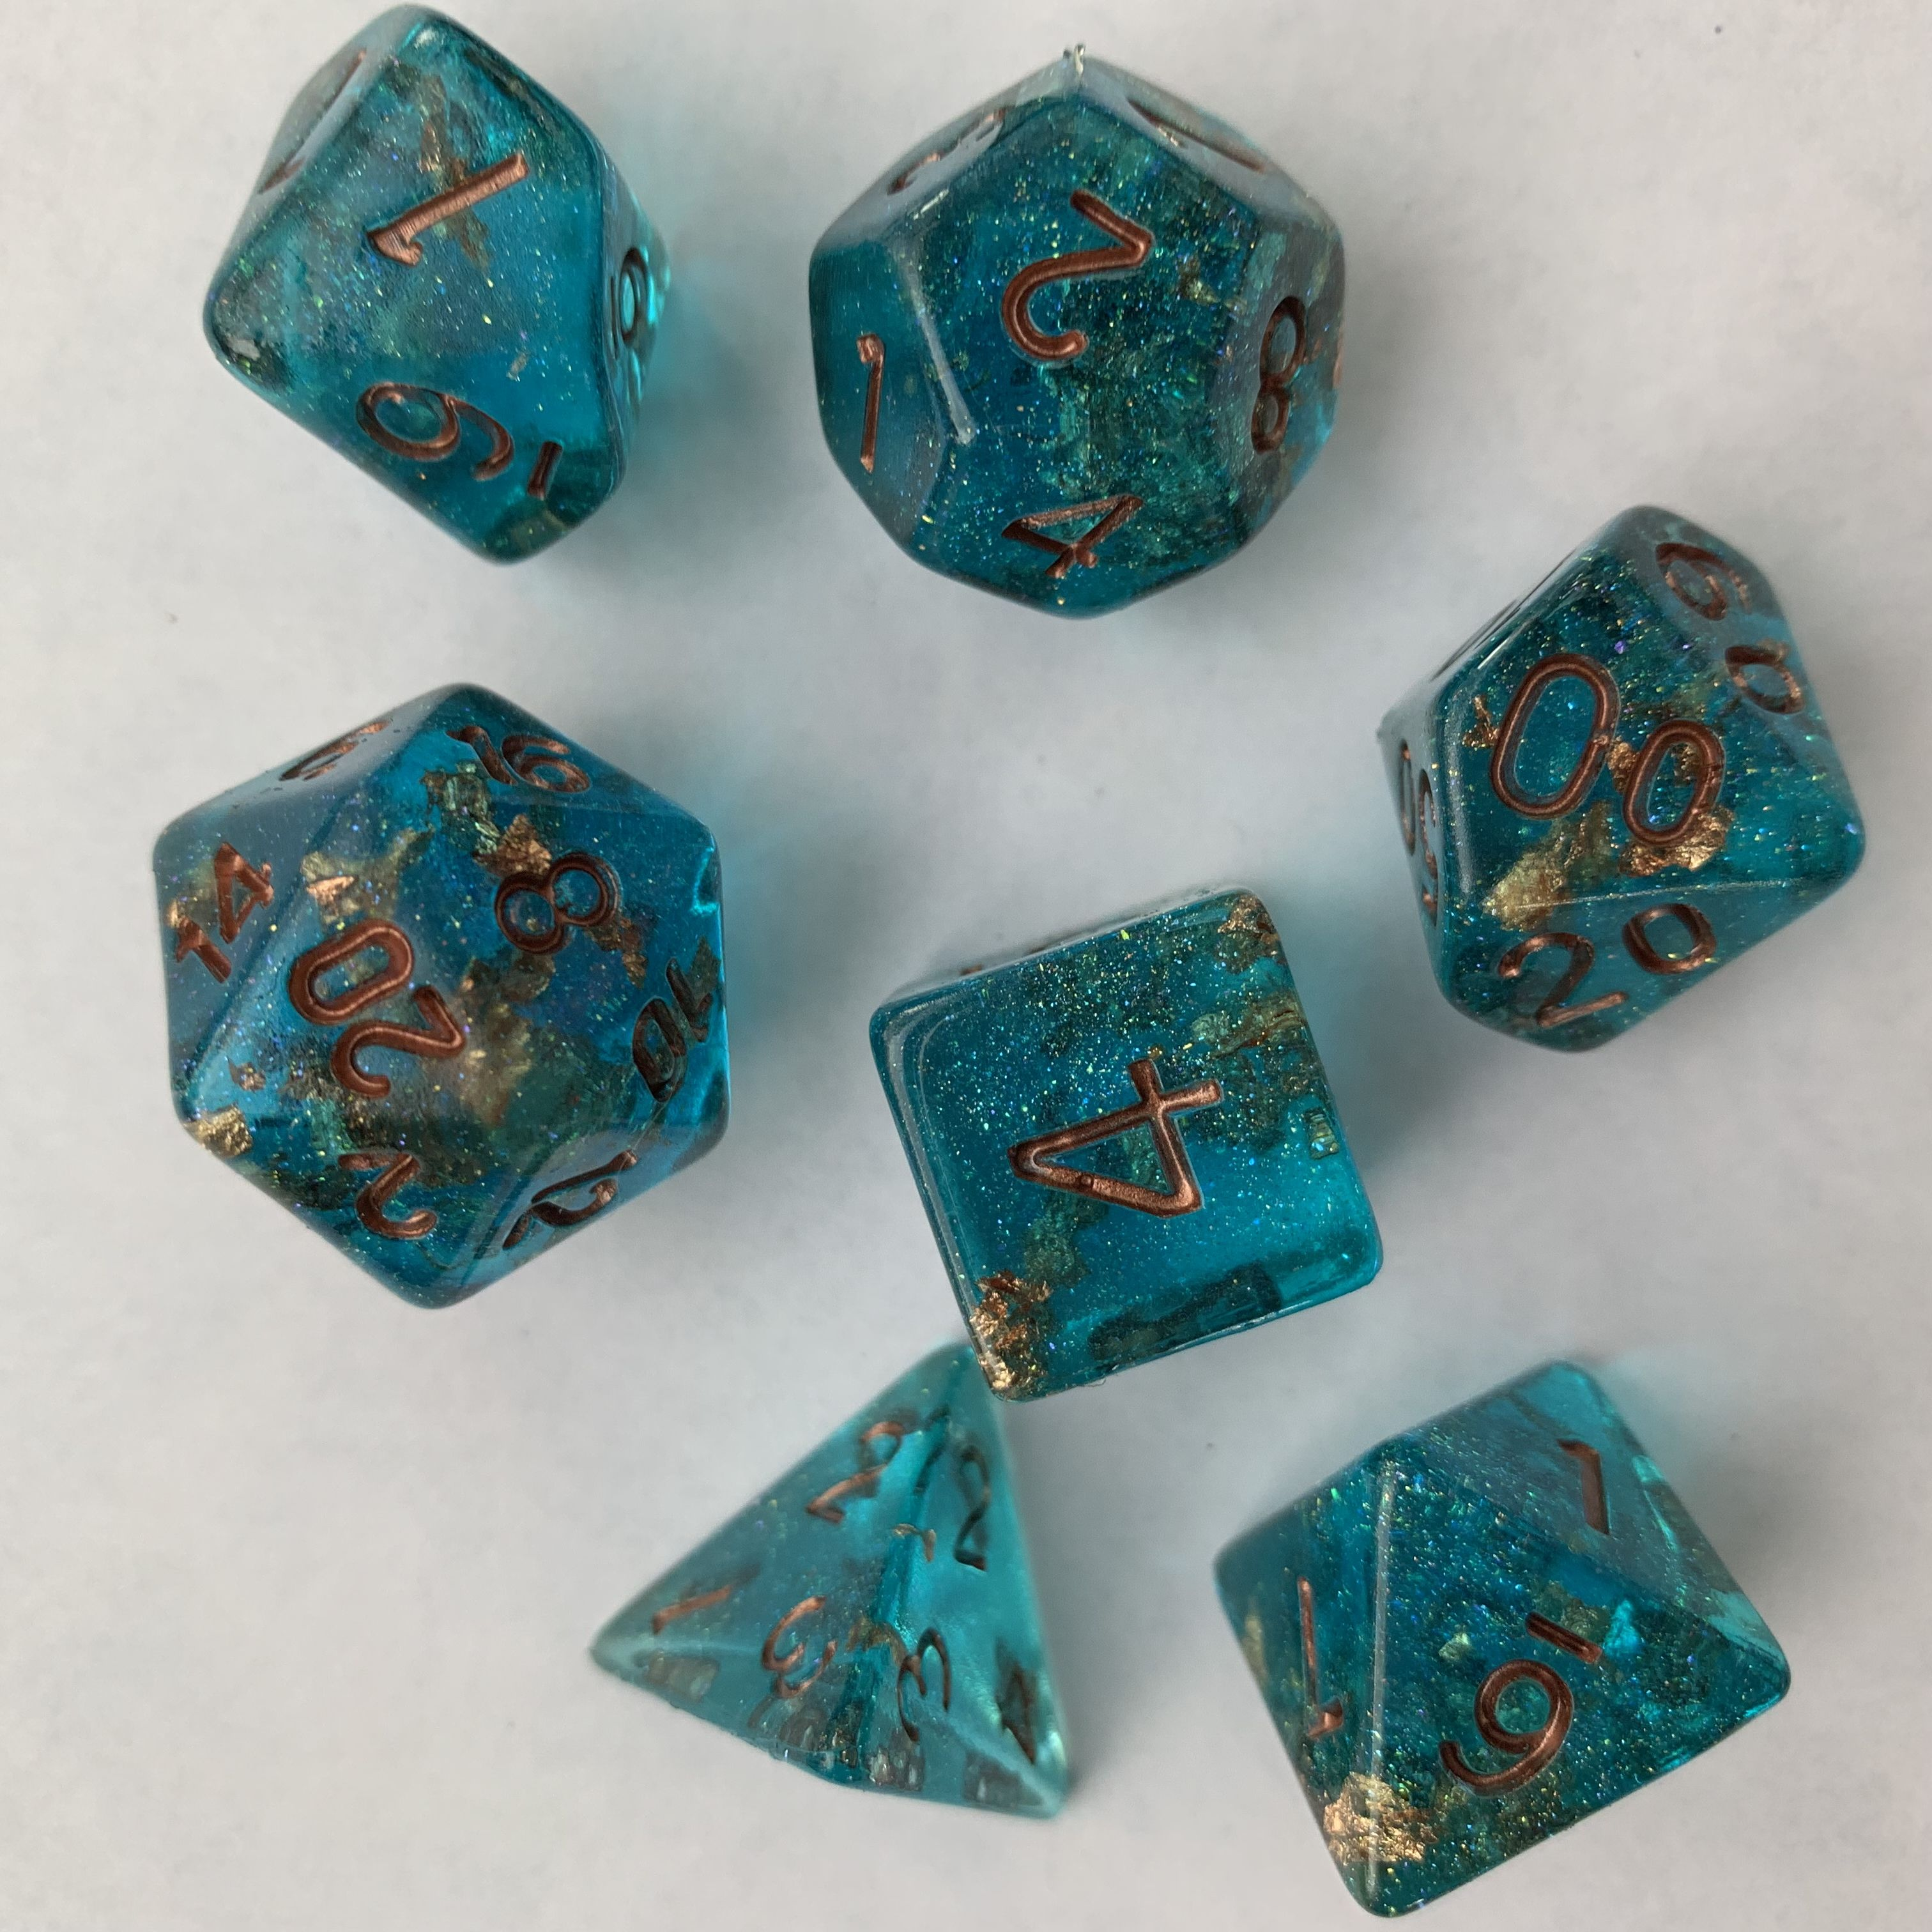 Dungeons And Dragons Dice By Megan Davis On Dice